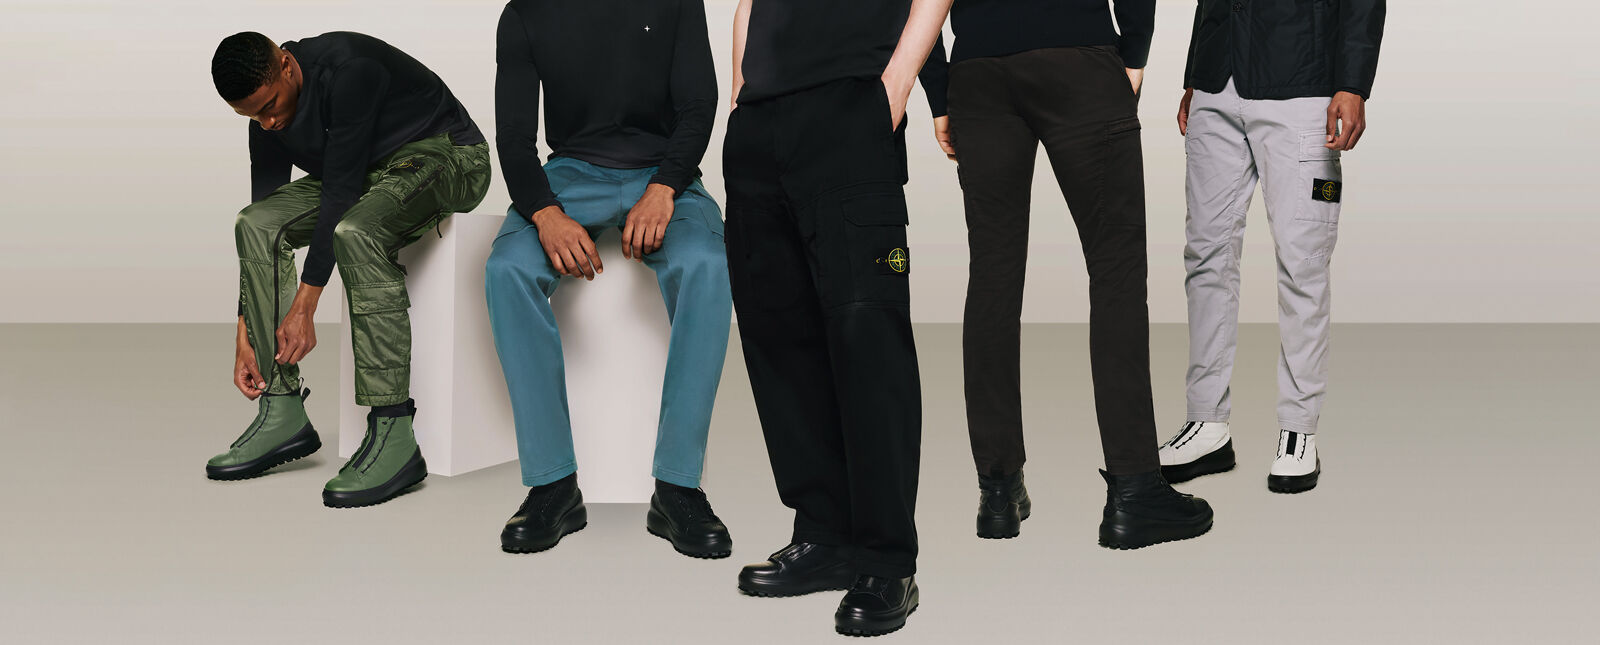 Five models wearing black tops and cargo pants in different styles and colors, shiny green, teal blue, black and light gray.